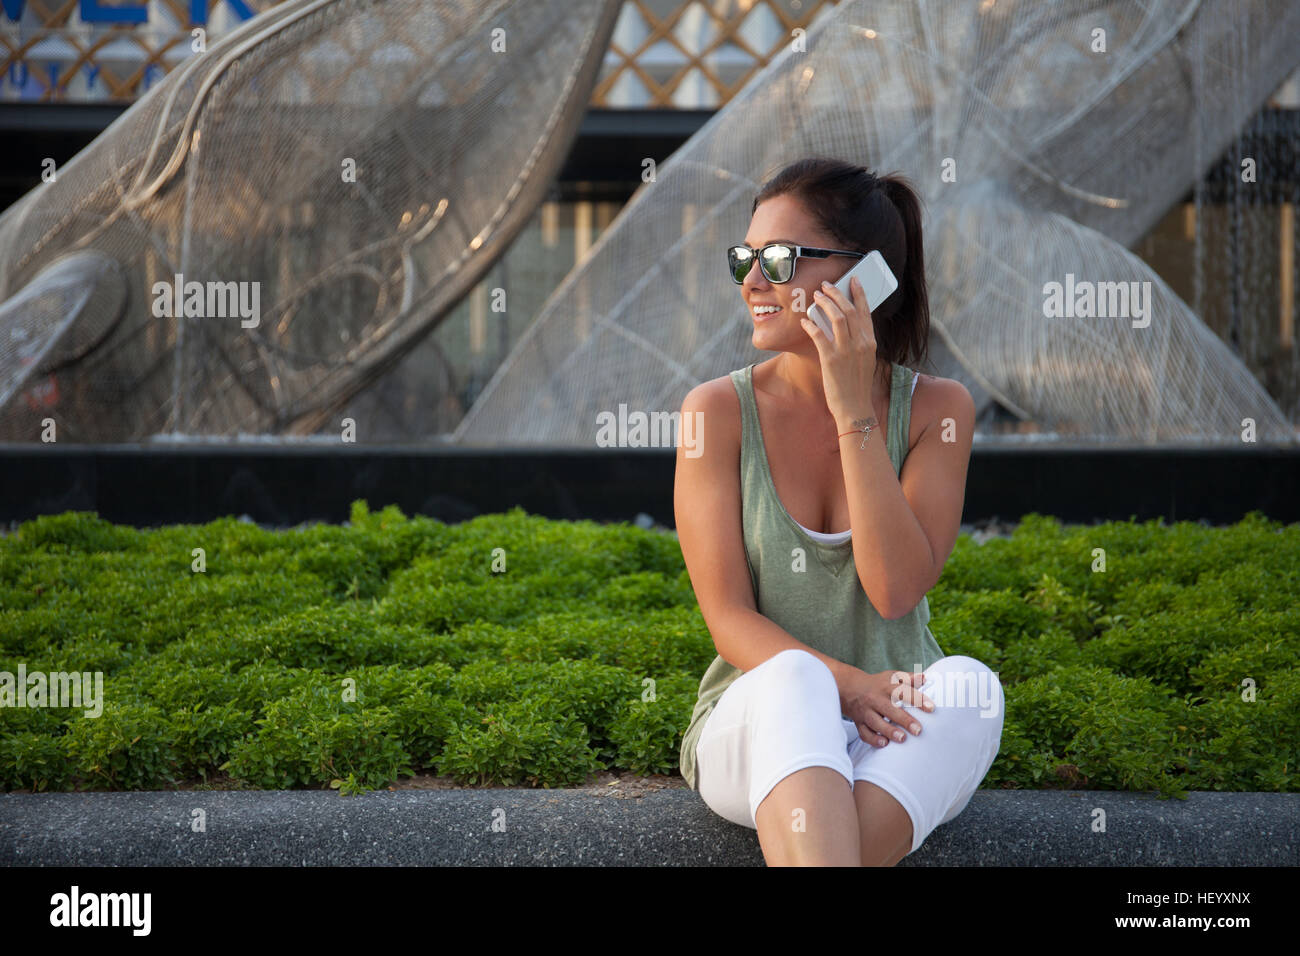 Young girl talks on the smartphone, she is wearing white trousers, green t-shirt and sunglasses - Stock Image